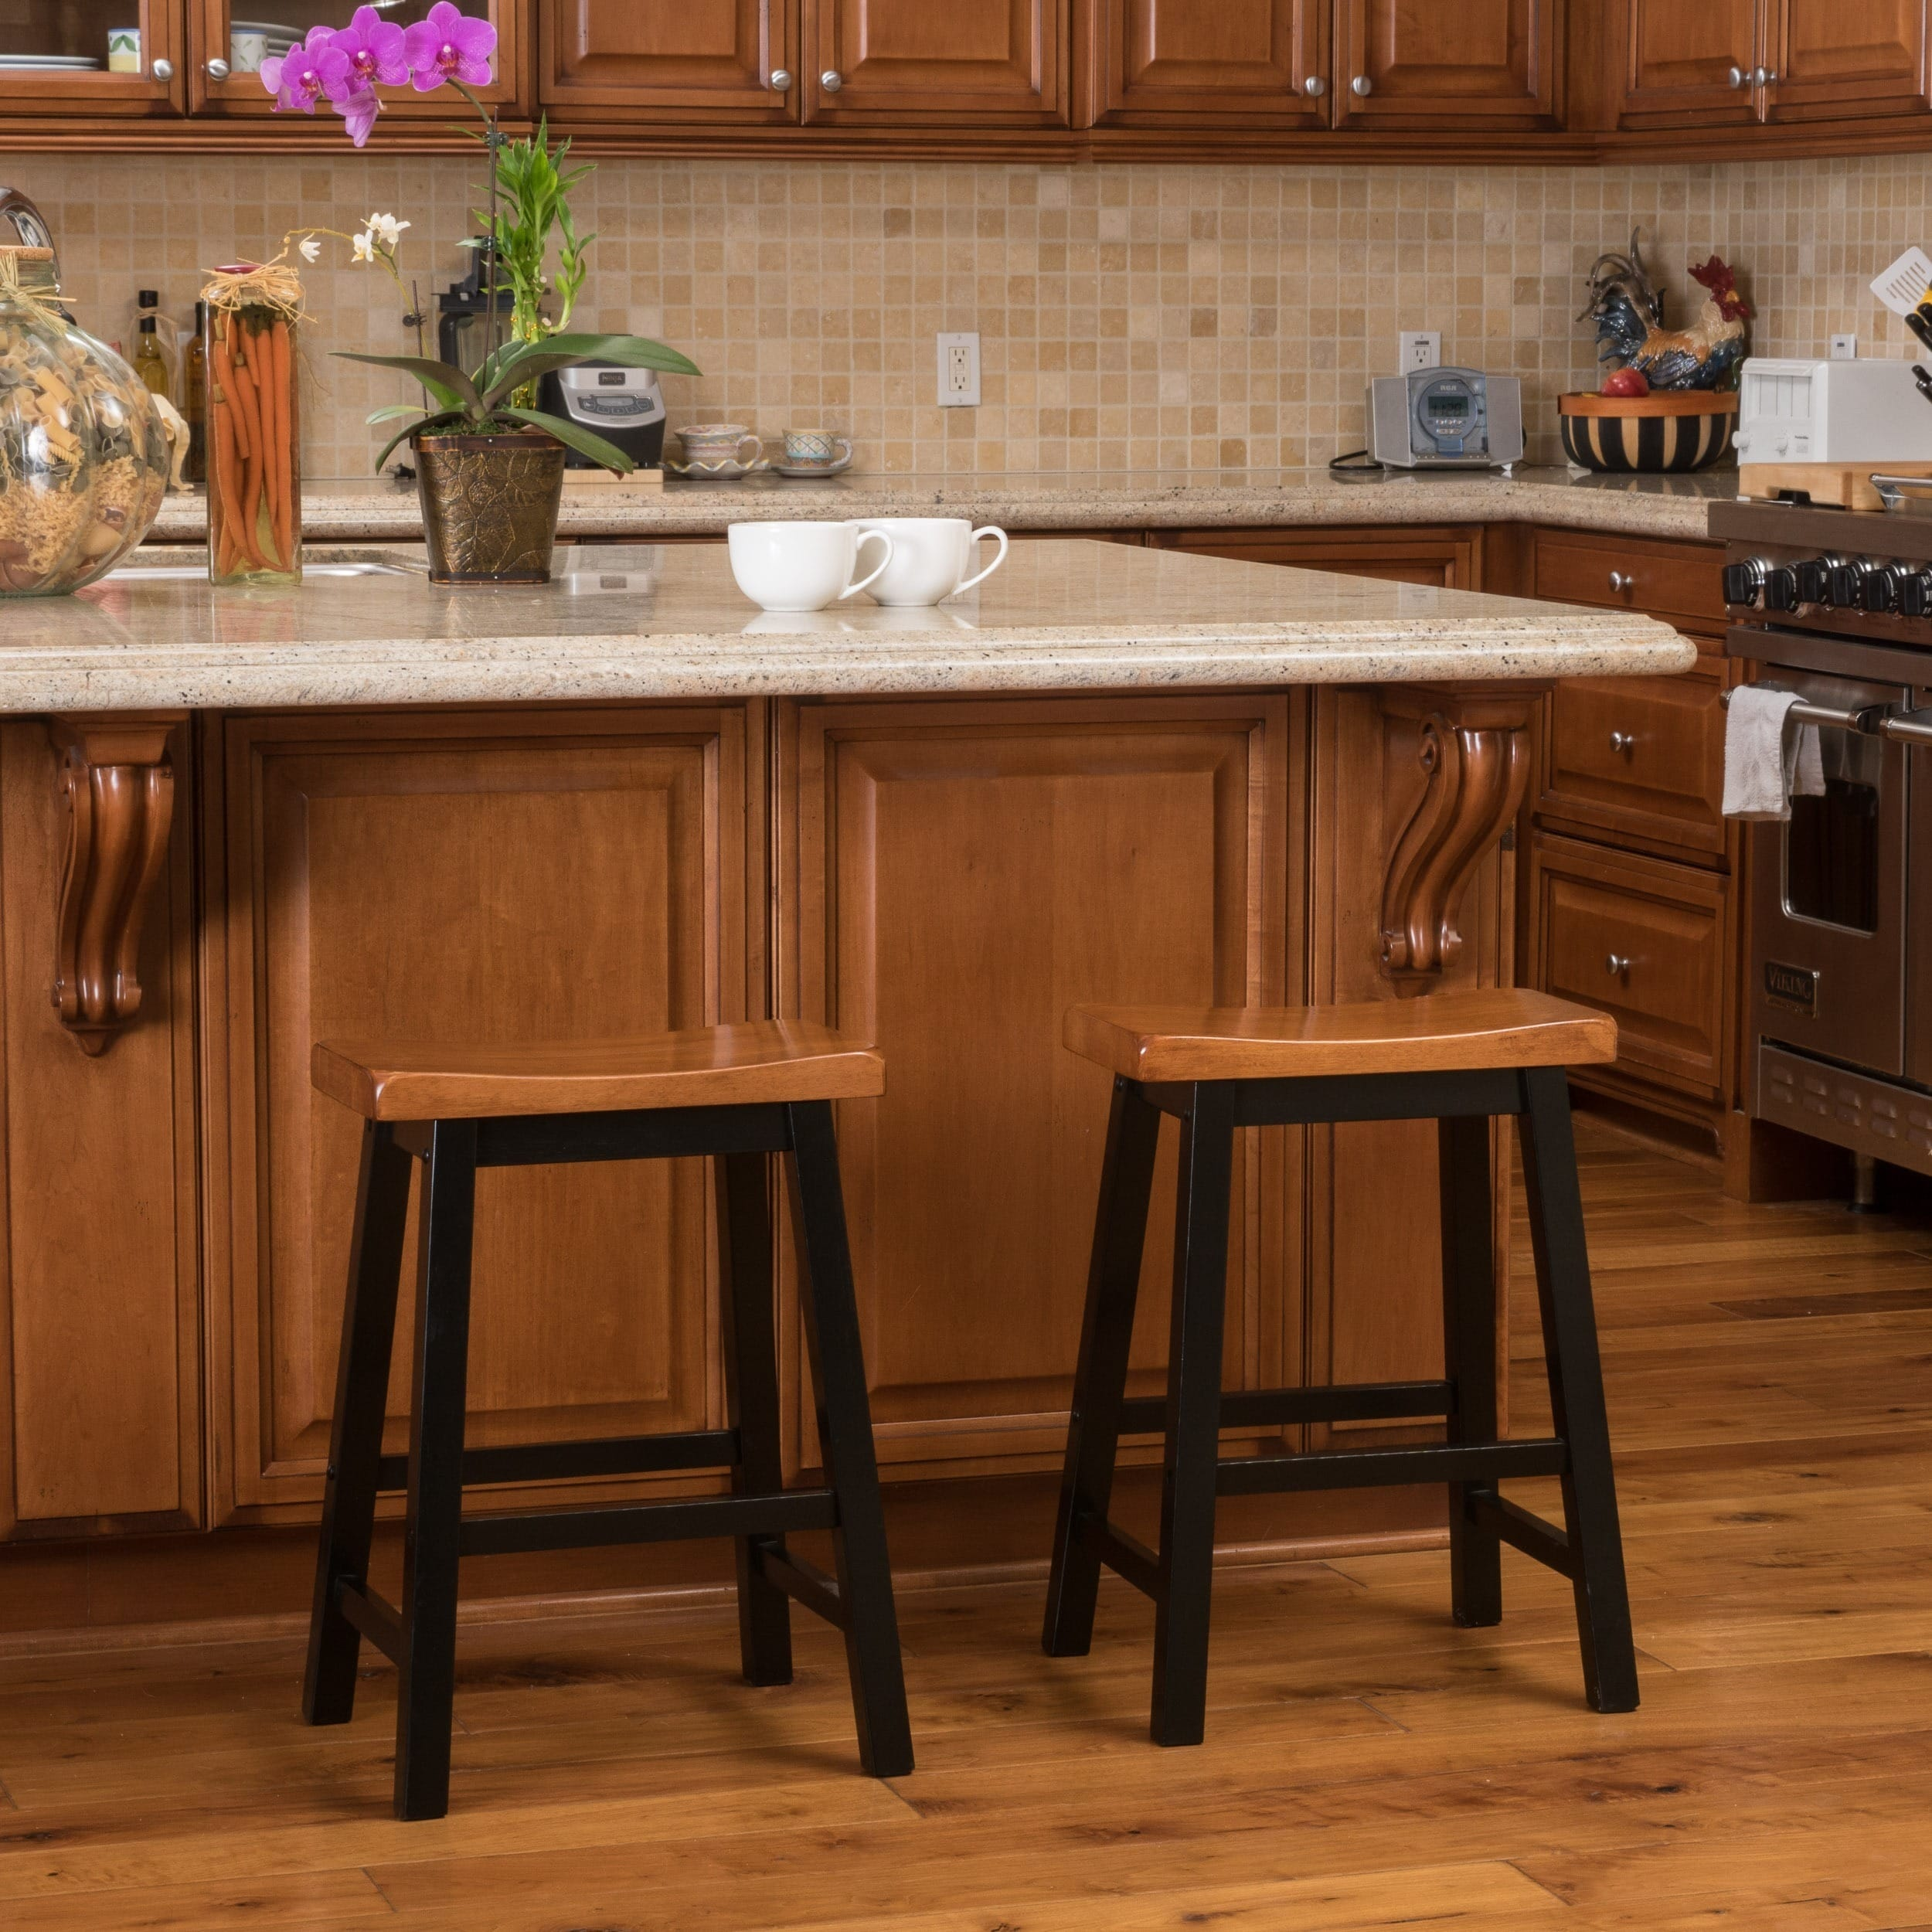 buy swivel online bar red chairs and counter uk stool makeovers countertop stools kitchen